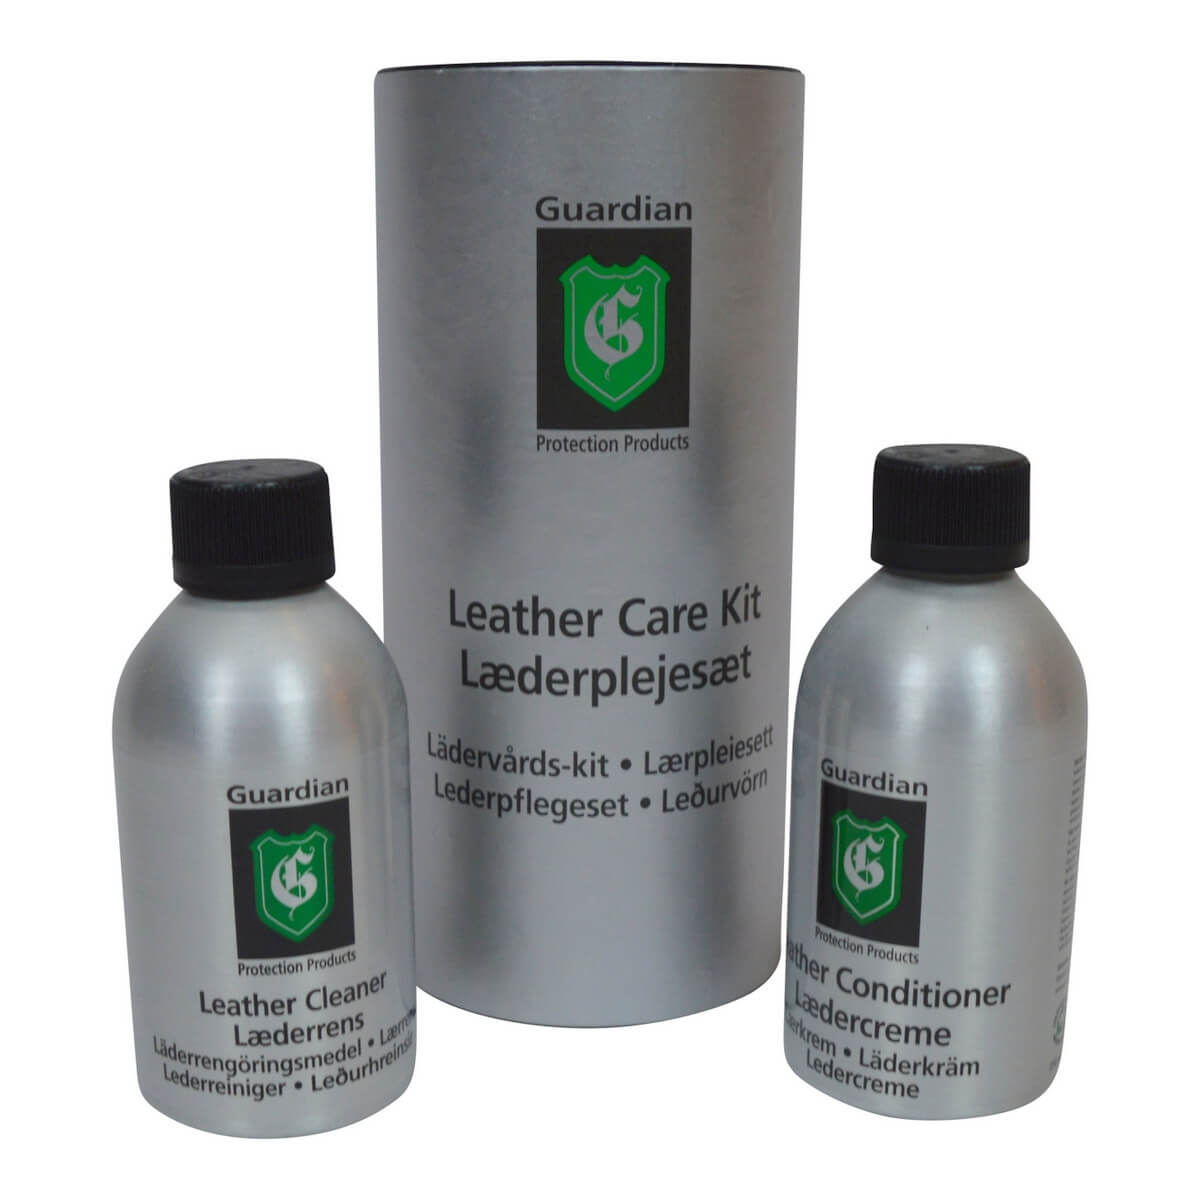 Guardian 'Leather Care Kit'